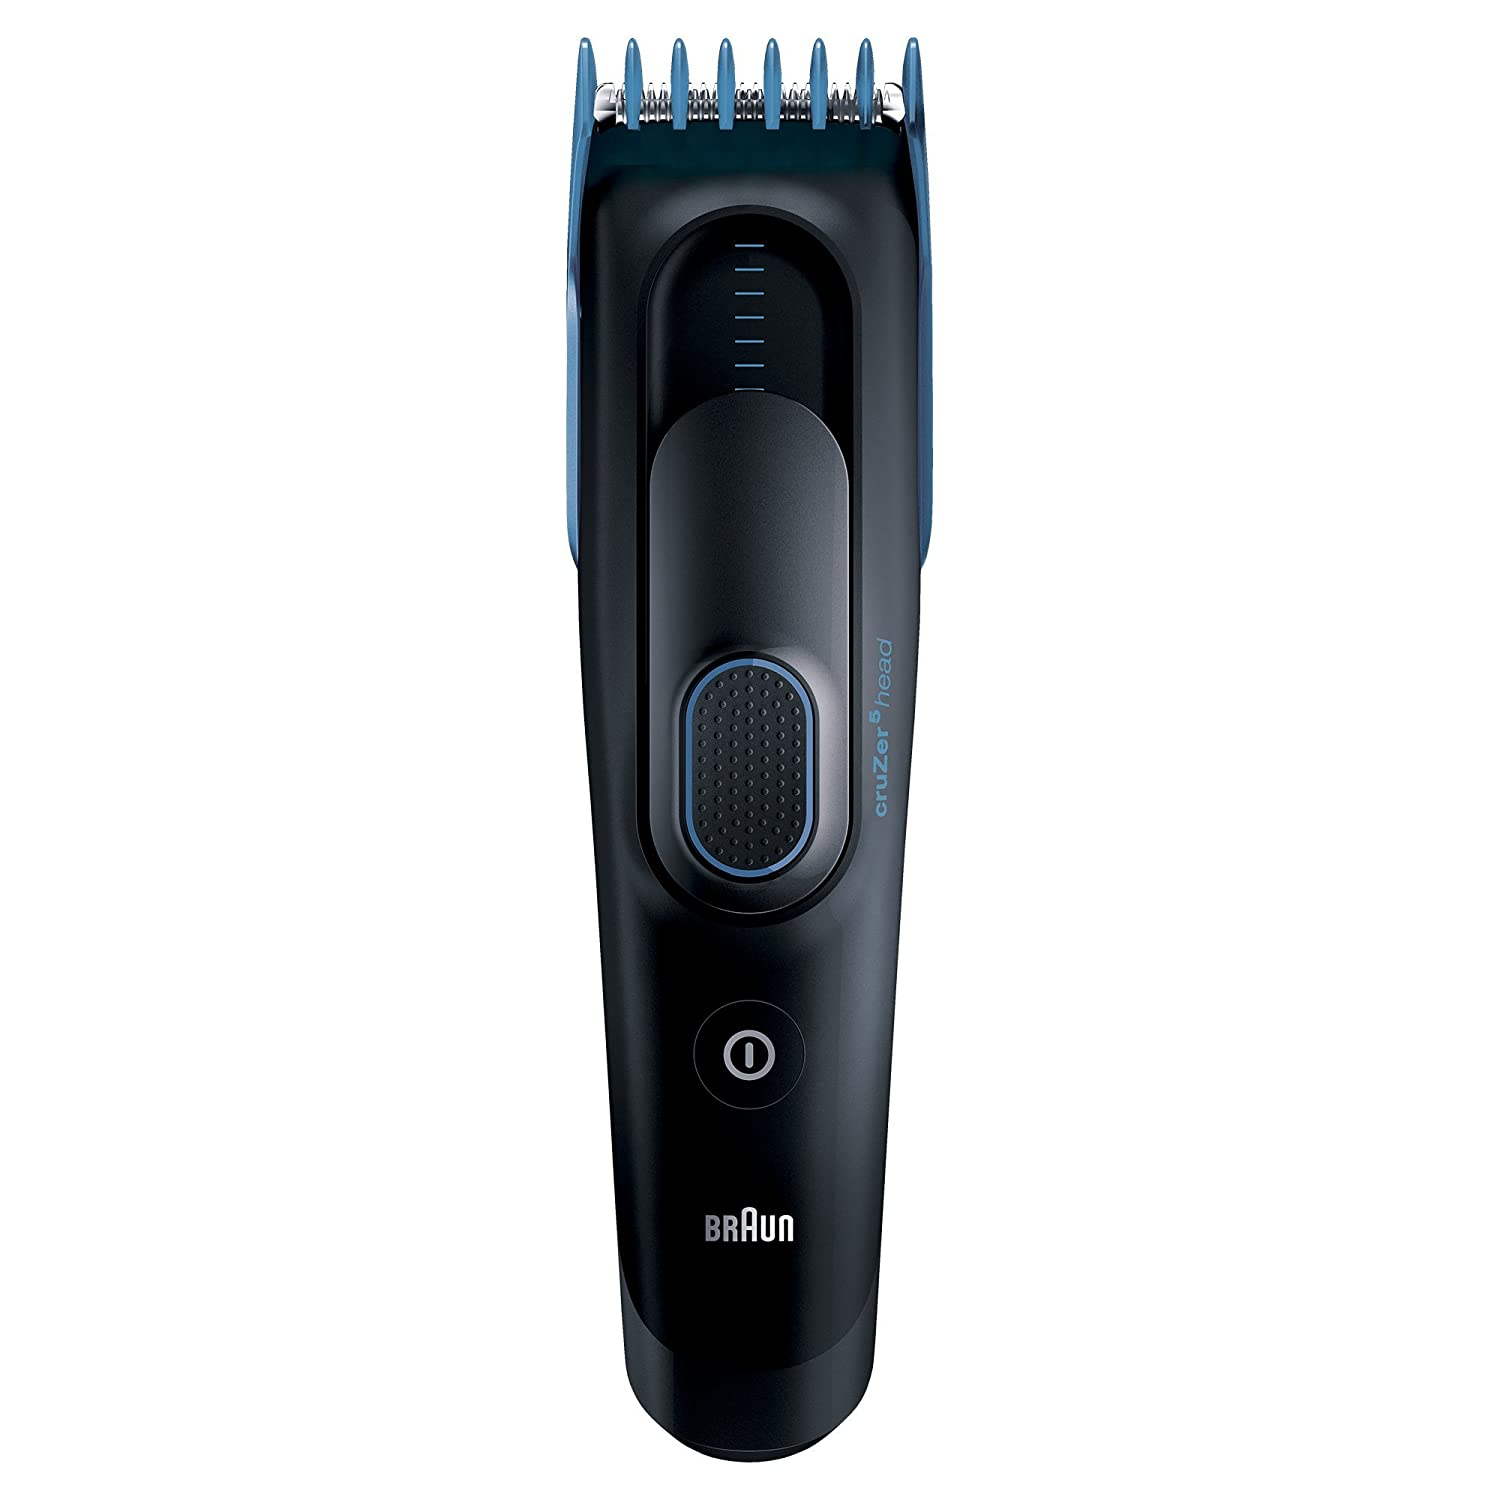 Braun Cruzer 5 Electric Shaver / Styler / Trimmer, 3-in-1 Ultimate Hair Clipper, Wet & Dry, 8 Settings for Perfect Style in All Lengths, Fully Washable